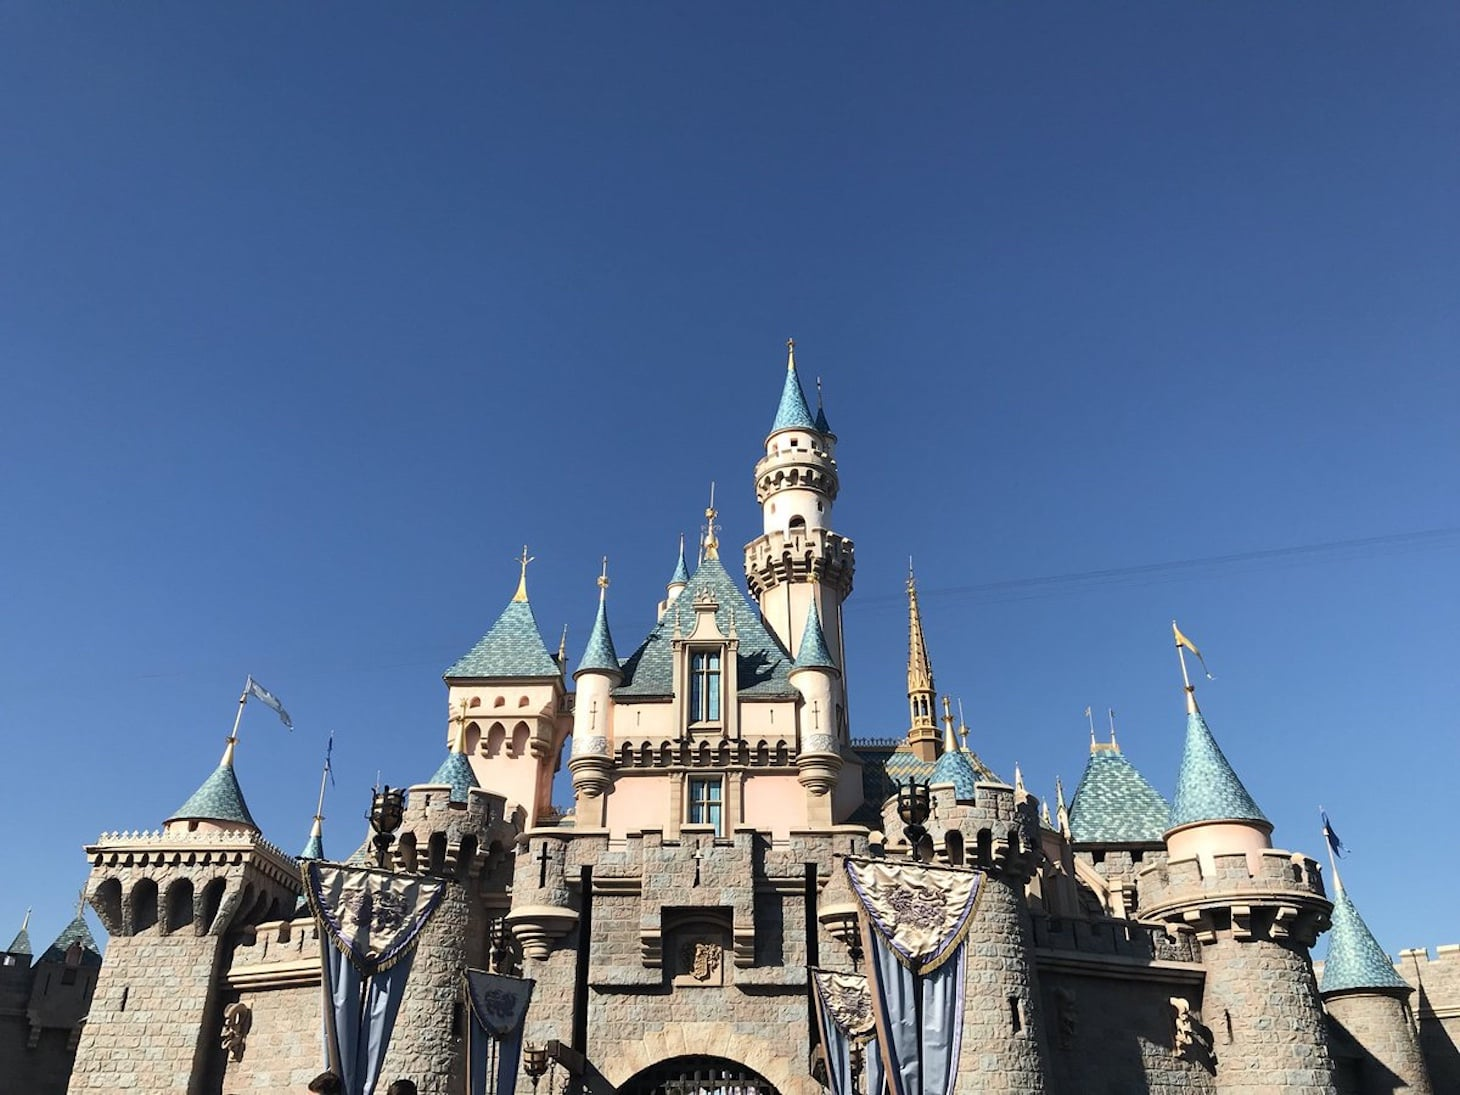 Sleeping Beauty Castle at Disneyland Park (credit: Megan duBois)